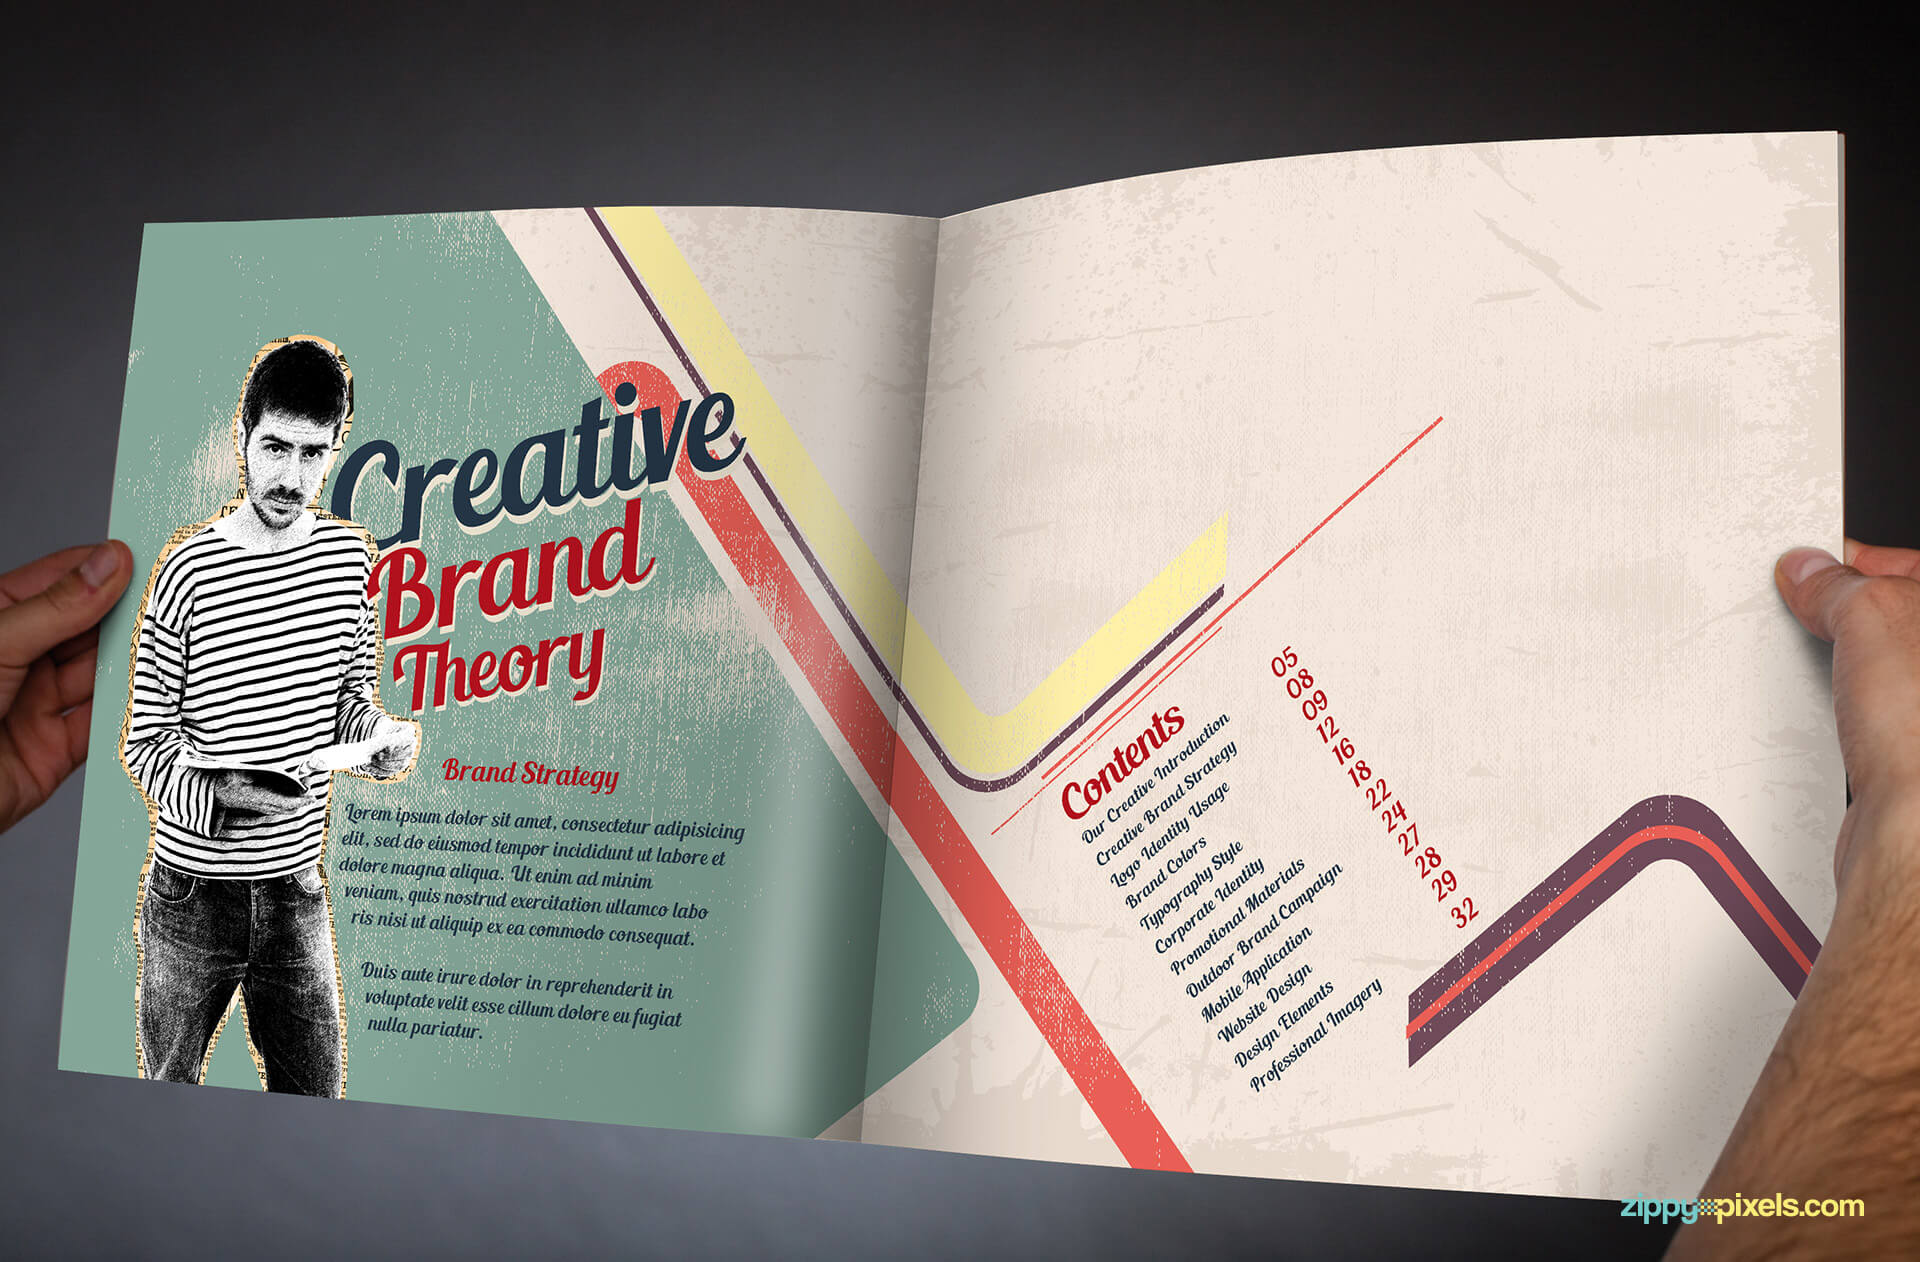 04-brand-book-13-creative-brand-theory-table-of-contents